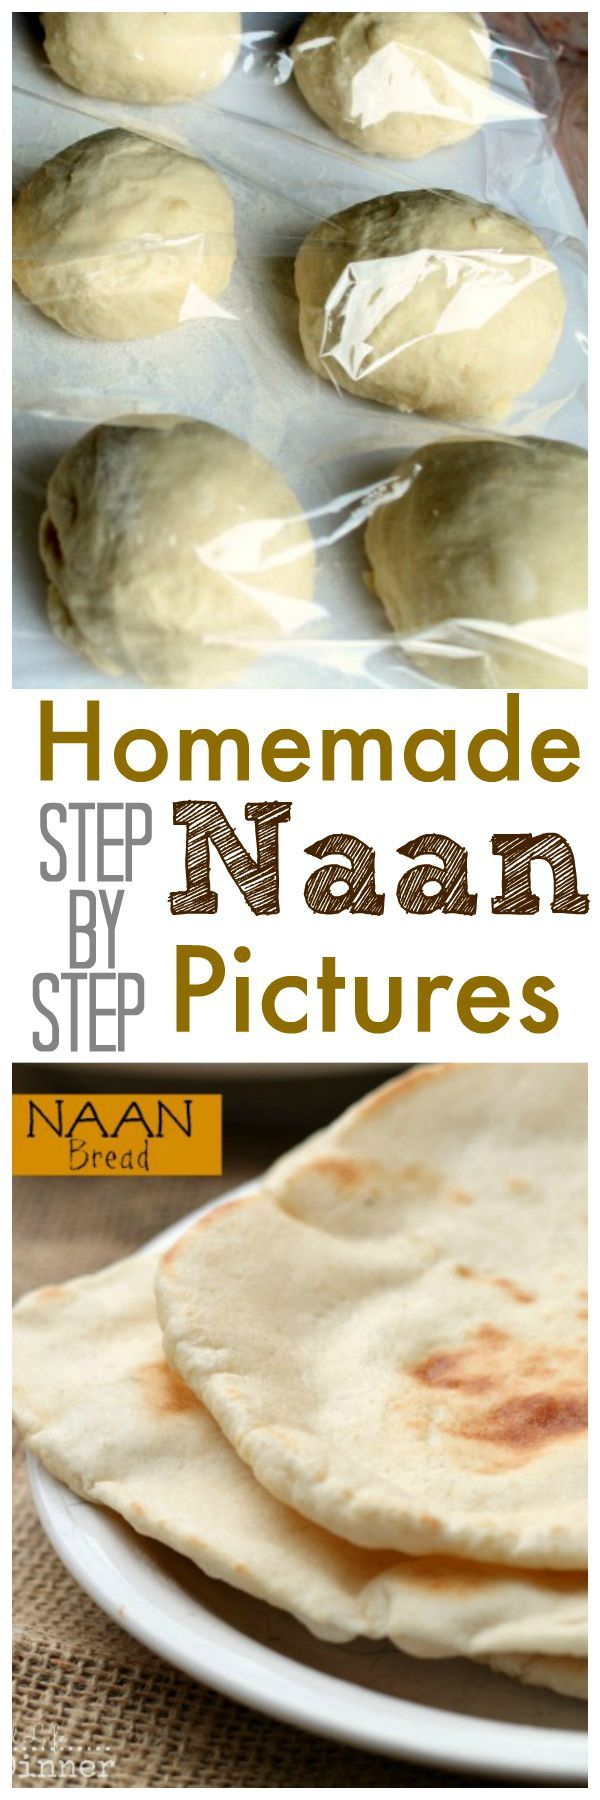 Making your own Naan isn't as complicated as you think. This How to make Naan Bread Recipe with step by step pictures will have you making it like a pro in no time! ~ reallifedinner.com